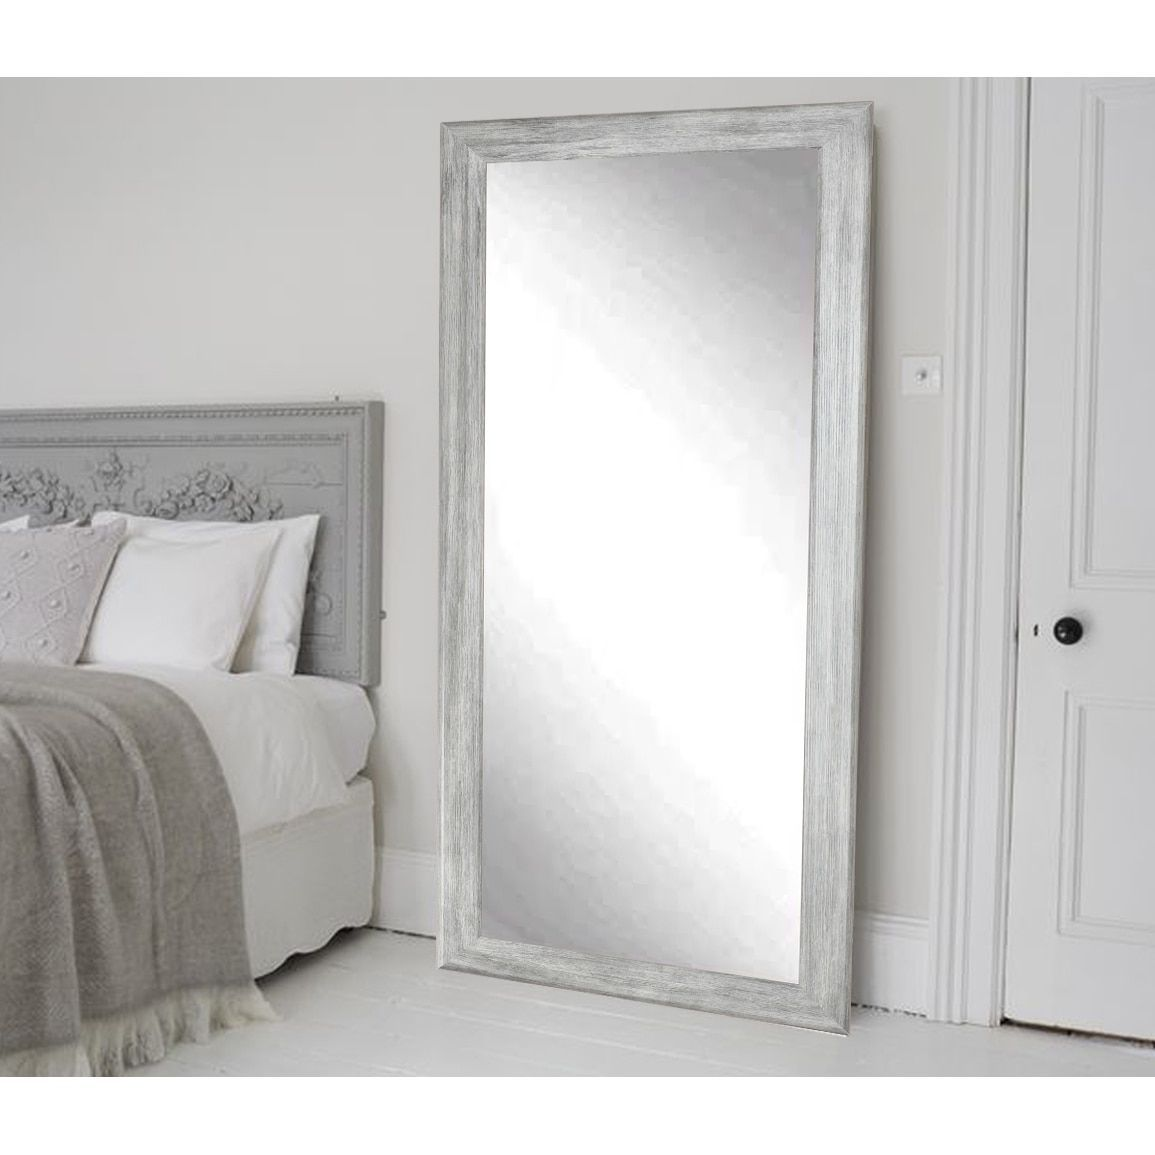 The Gray Barn Wilset Weathered Grey Floor Mirror Floor Mirror White Floor Mirror Leaning Floor Mirror